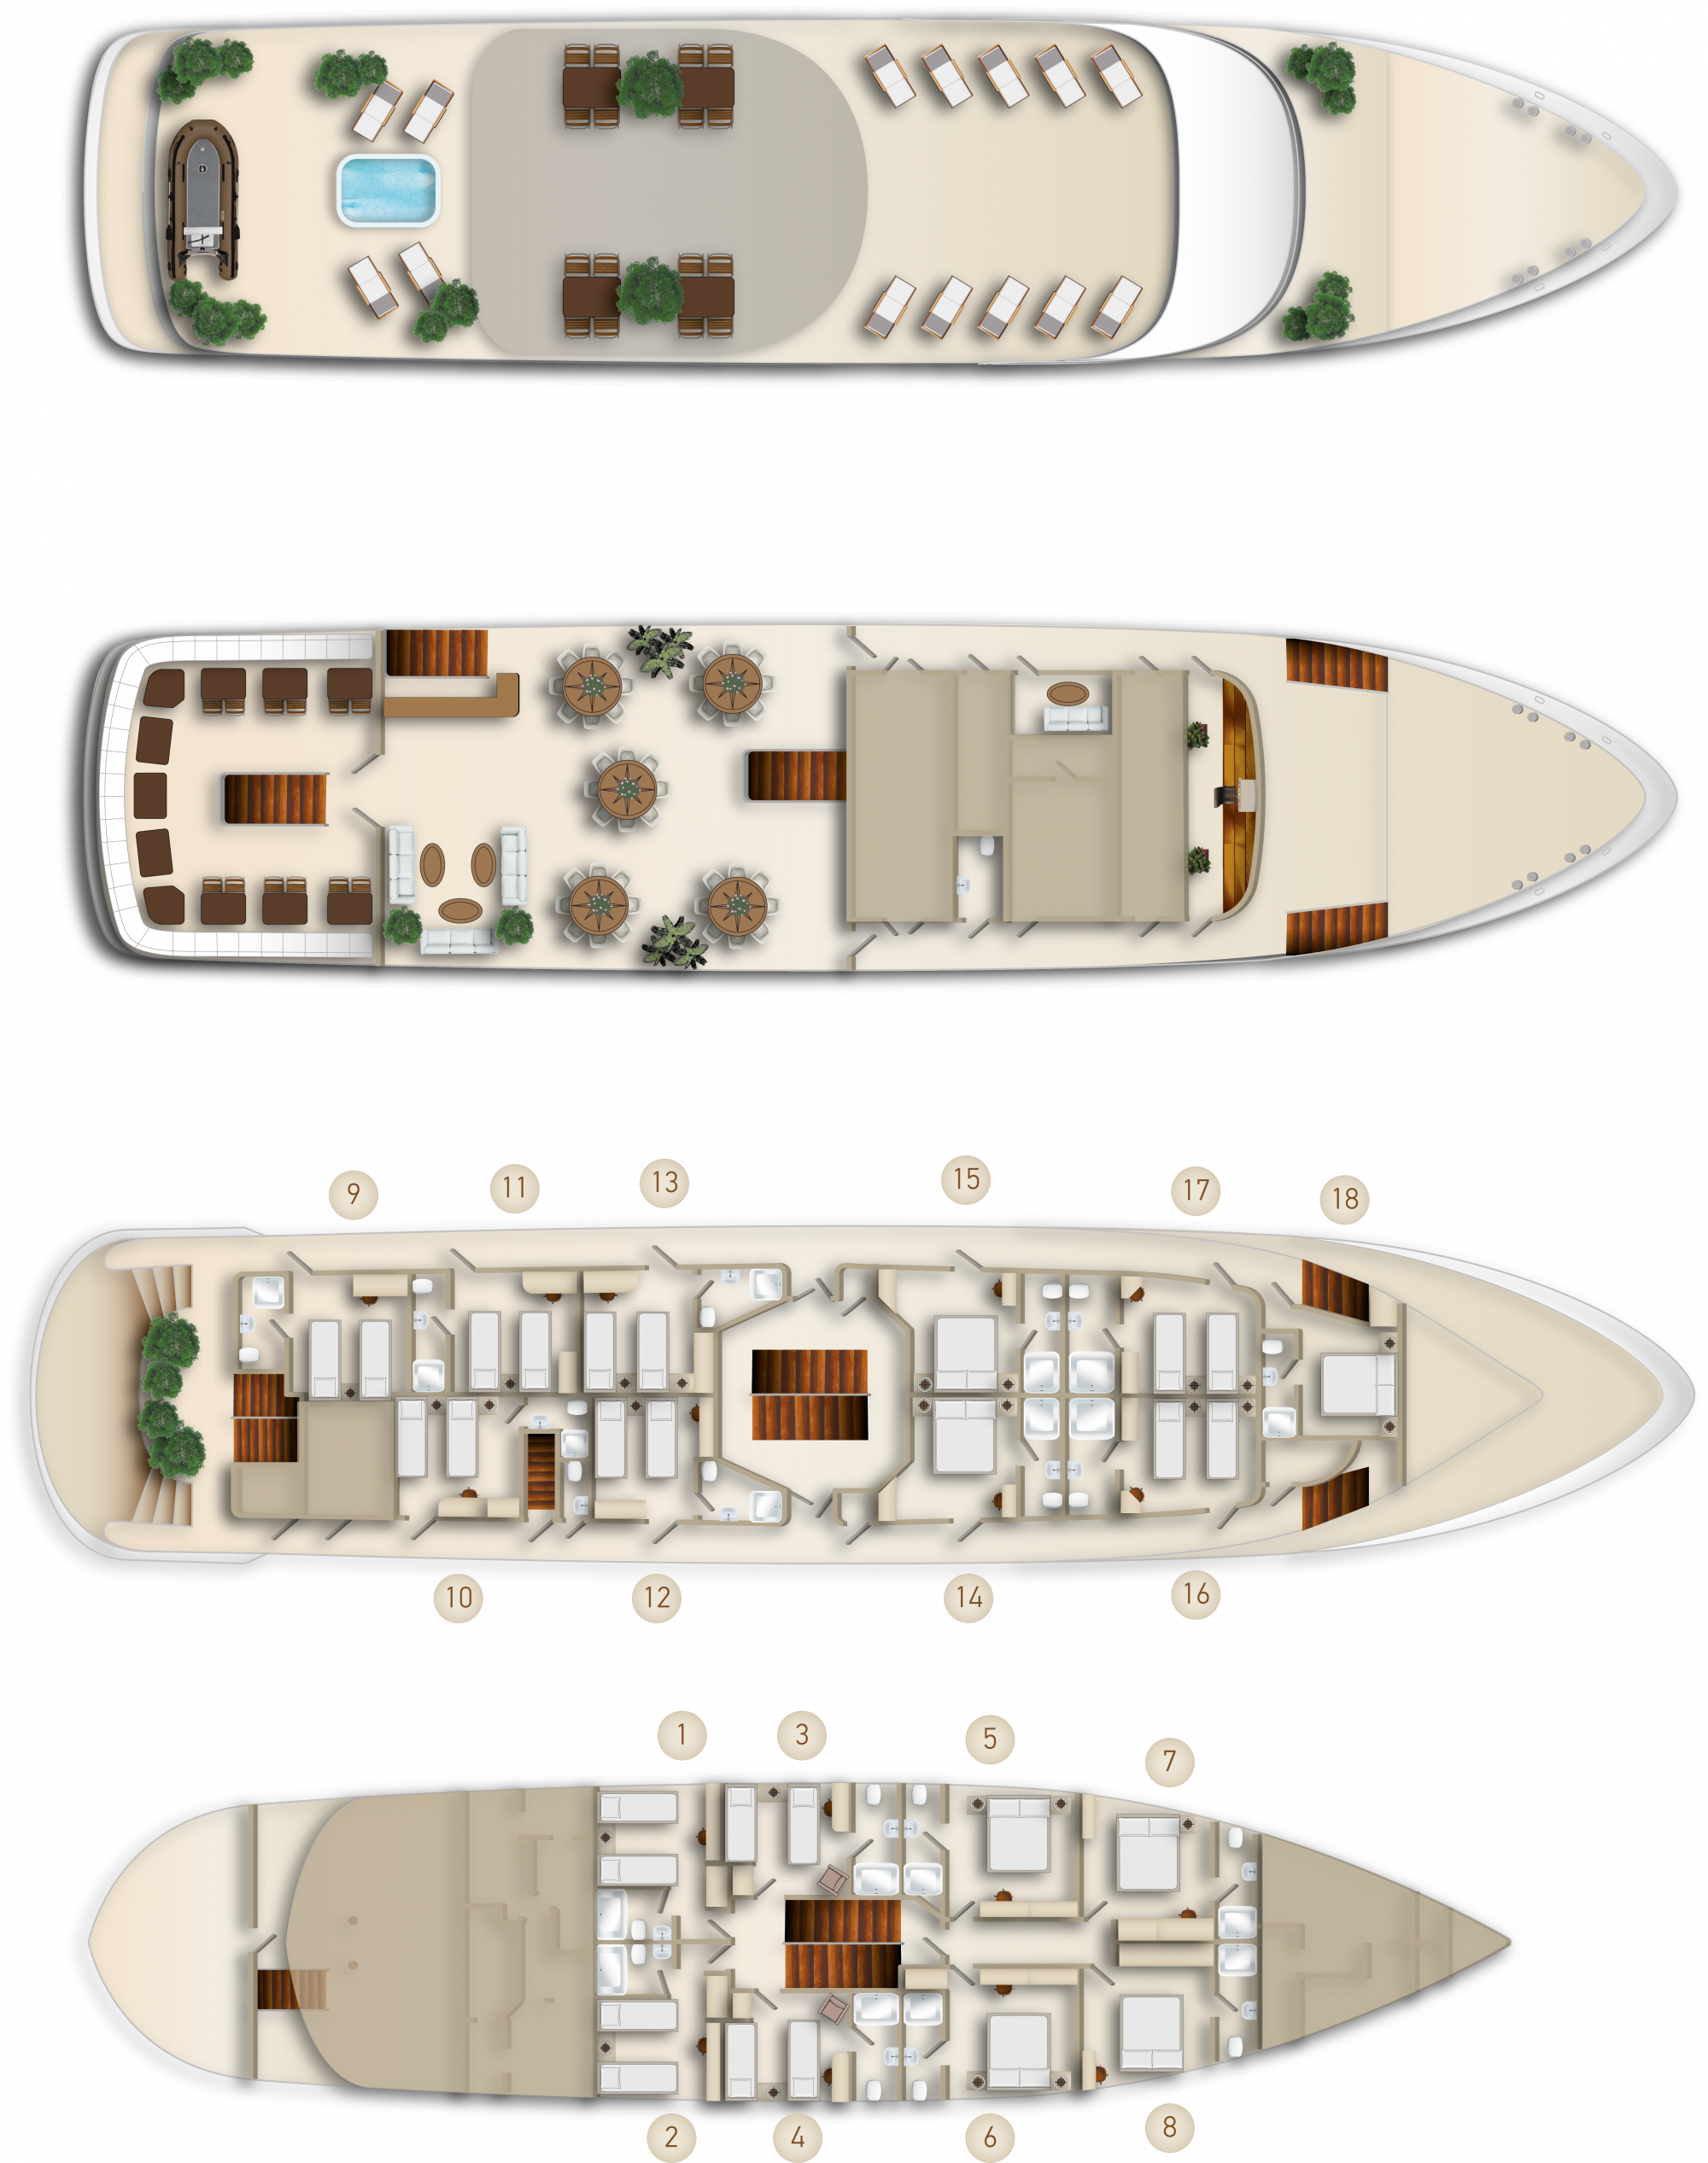 MS Invictus, deck plan